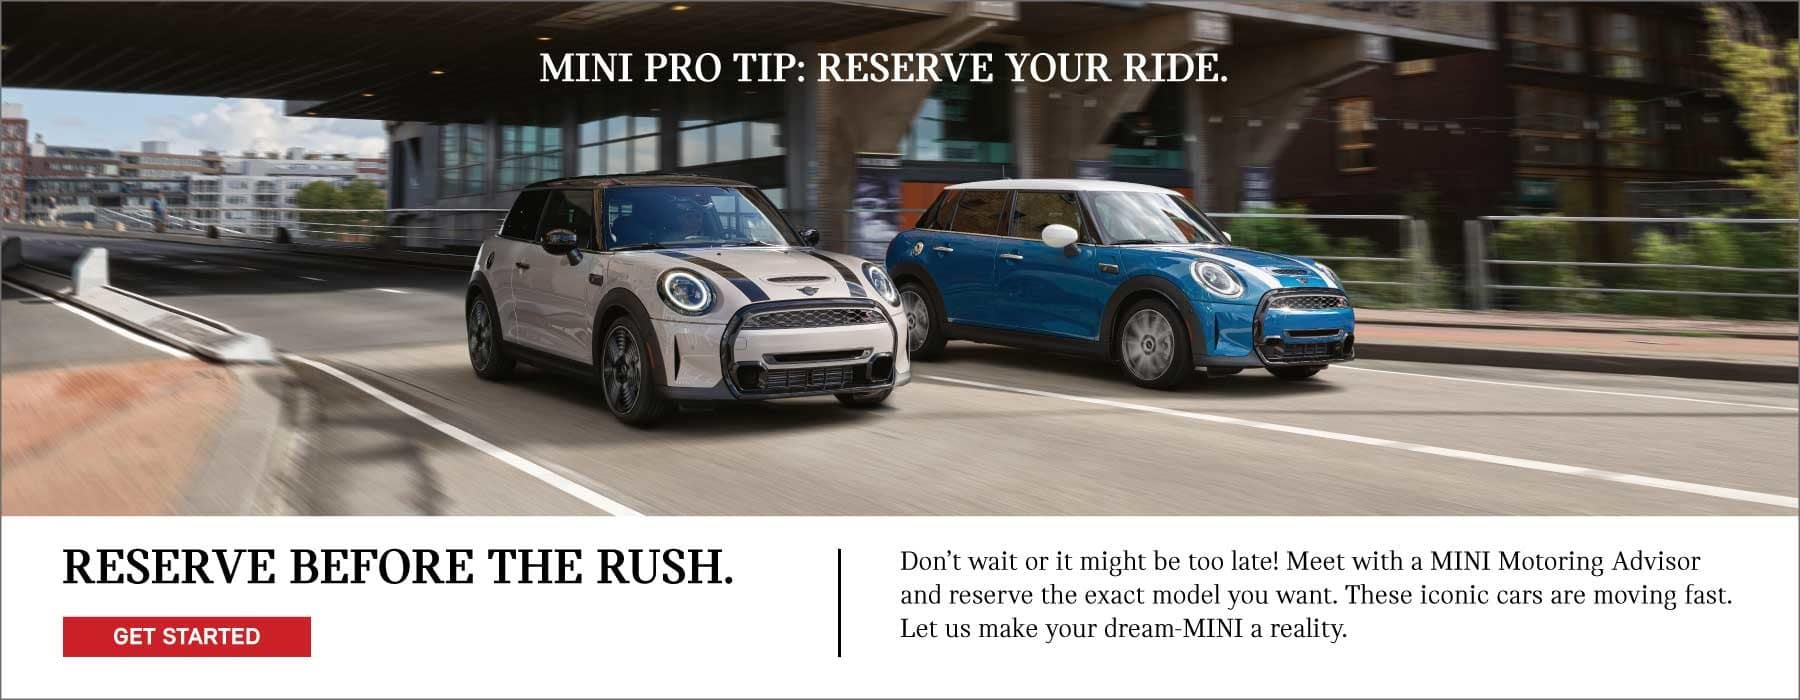 MINI Pro Tip: Reserve Your Ride. Before the rush!